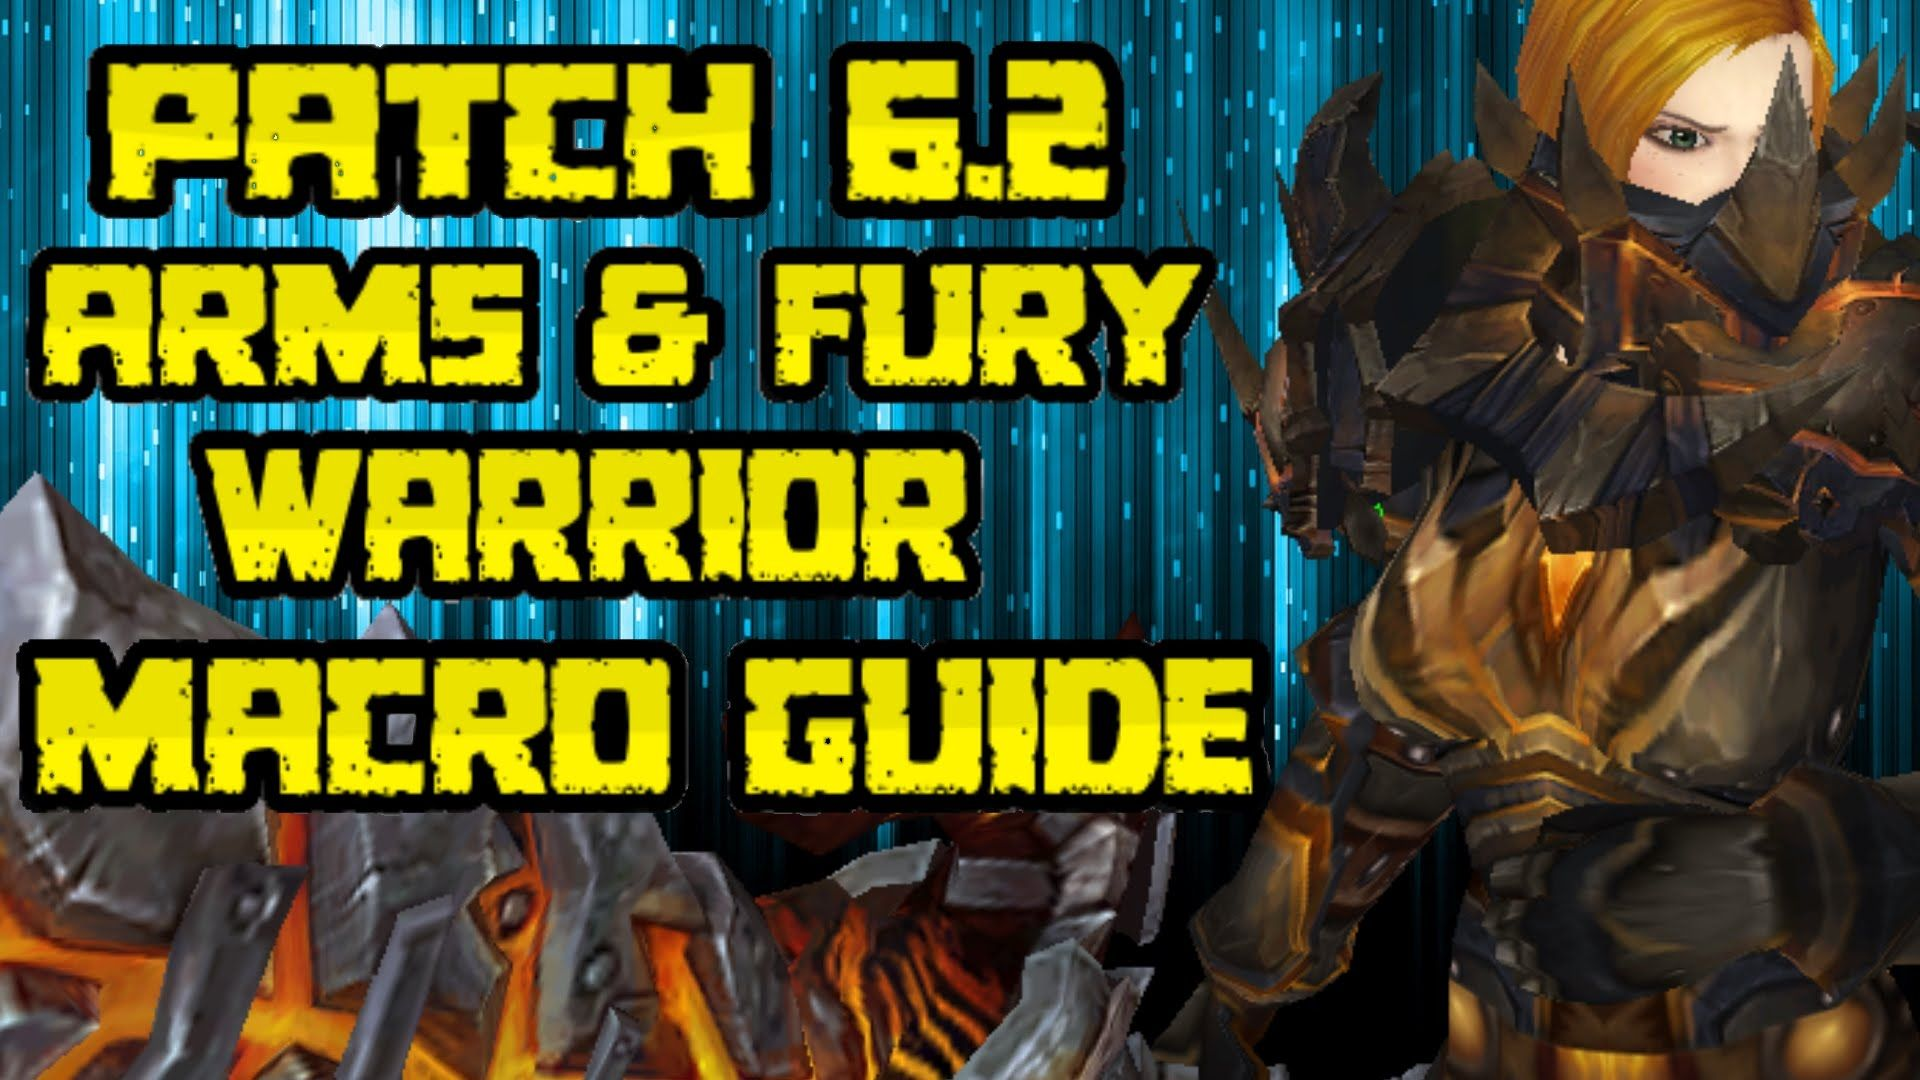 amazing Evylyn - 6 2 3 level 100 Arms & fury Warrior macros